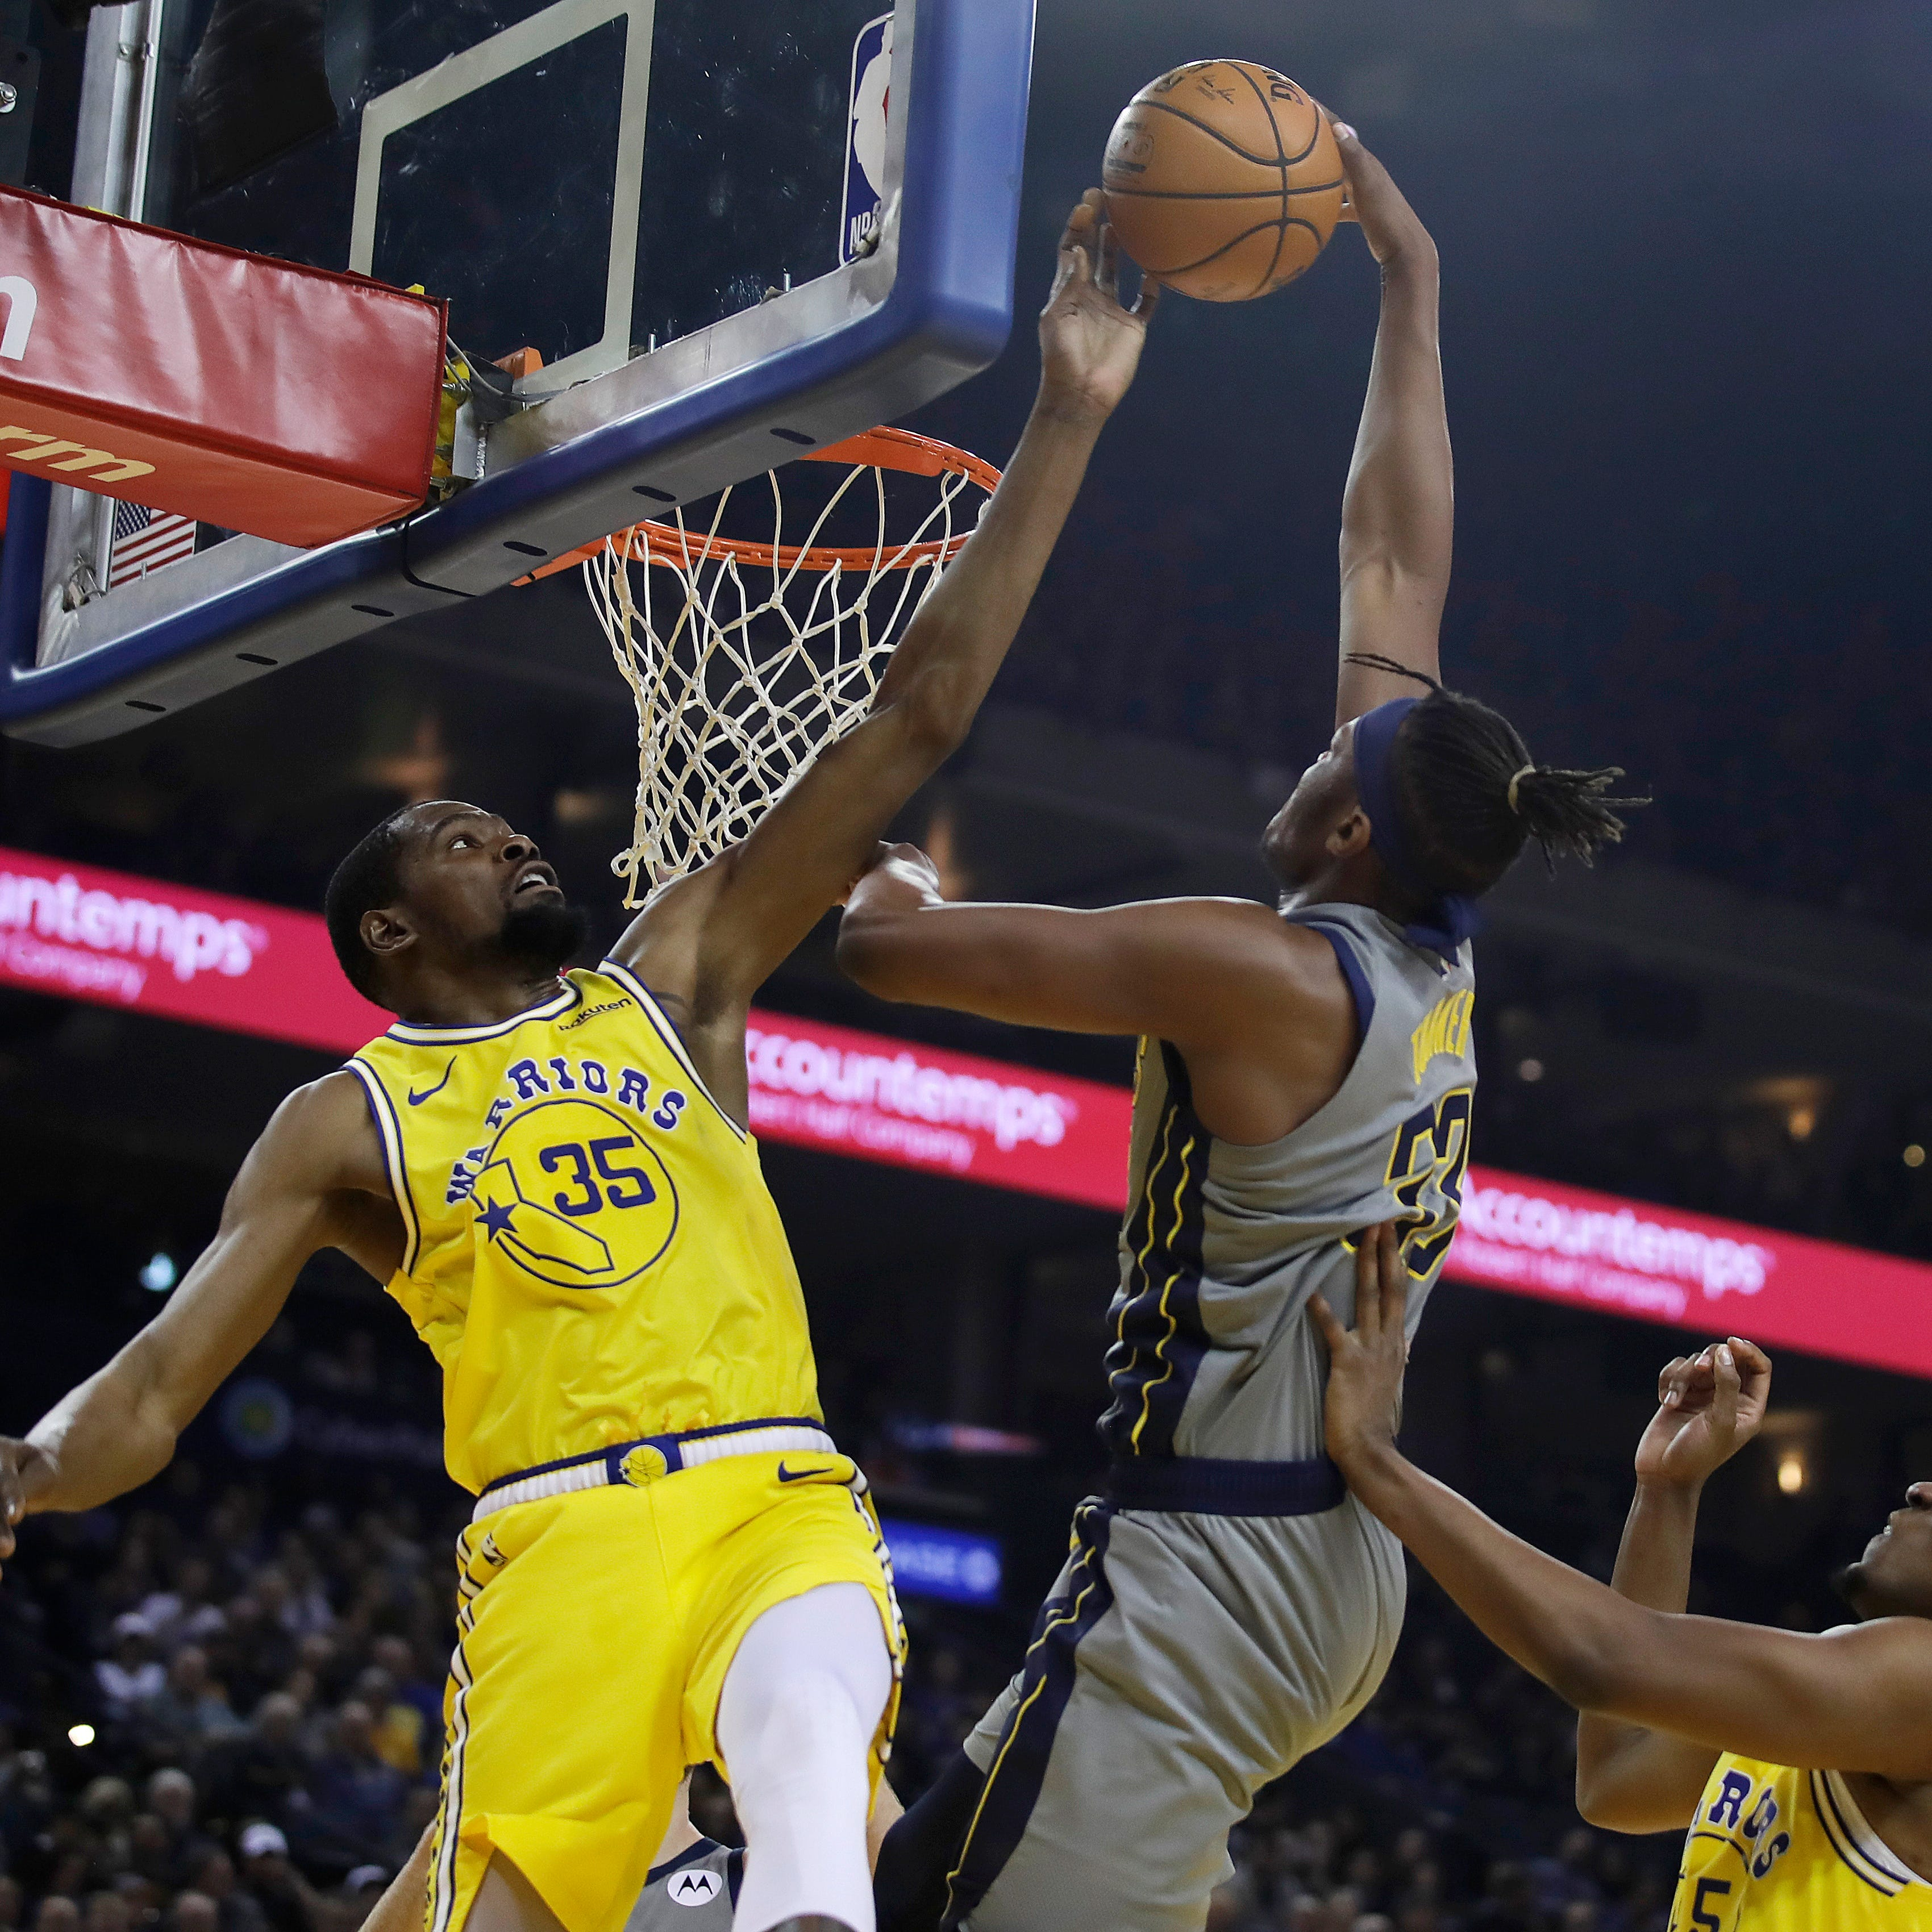 Pacers turn in offensive dud, go winless on trip with blowout loss to Warriors